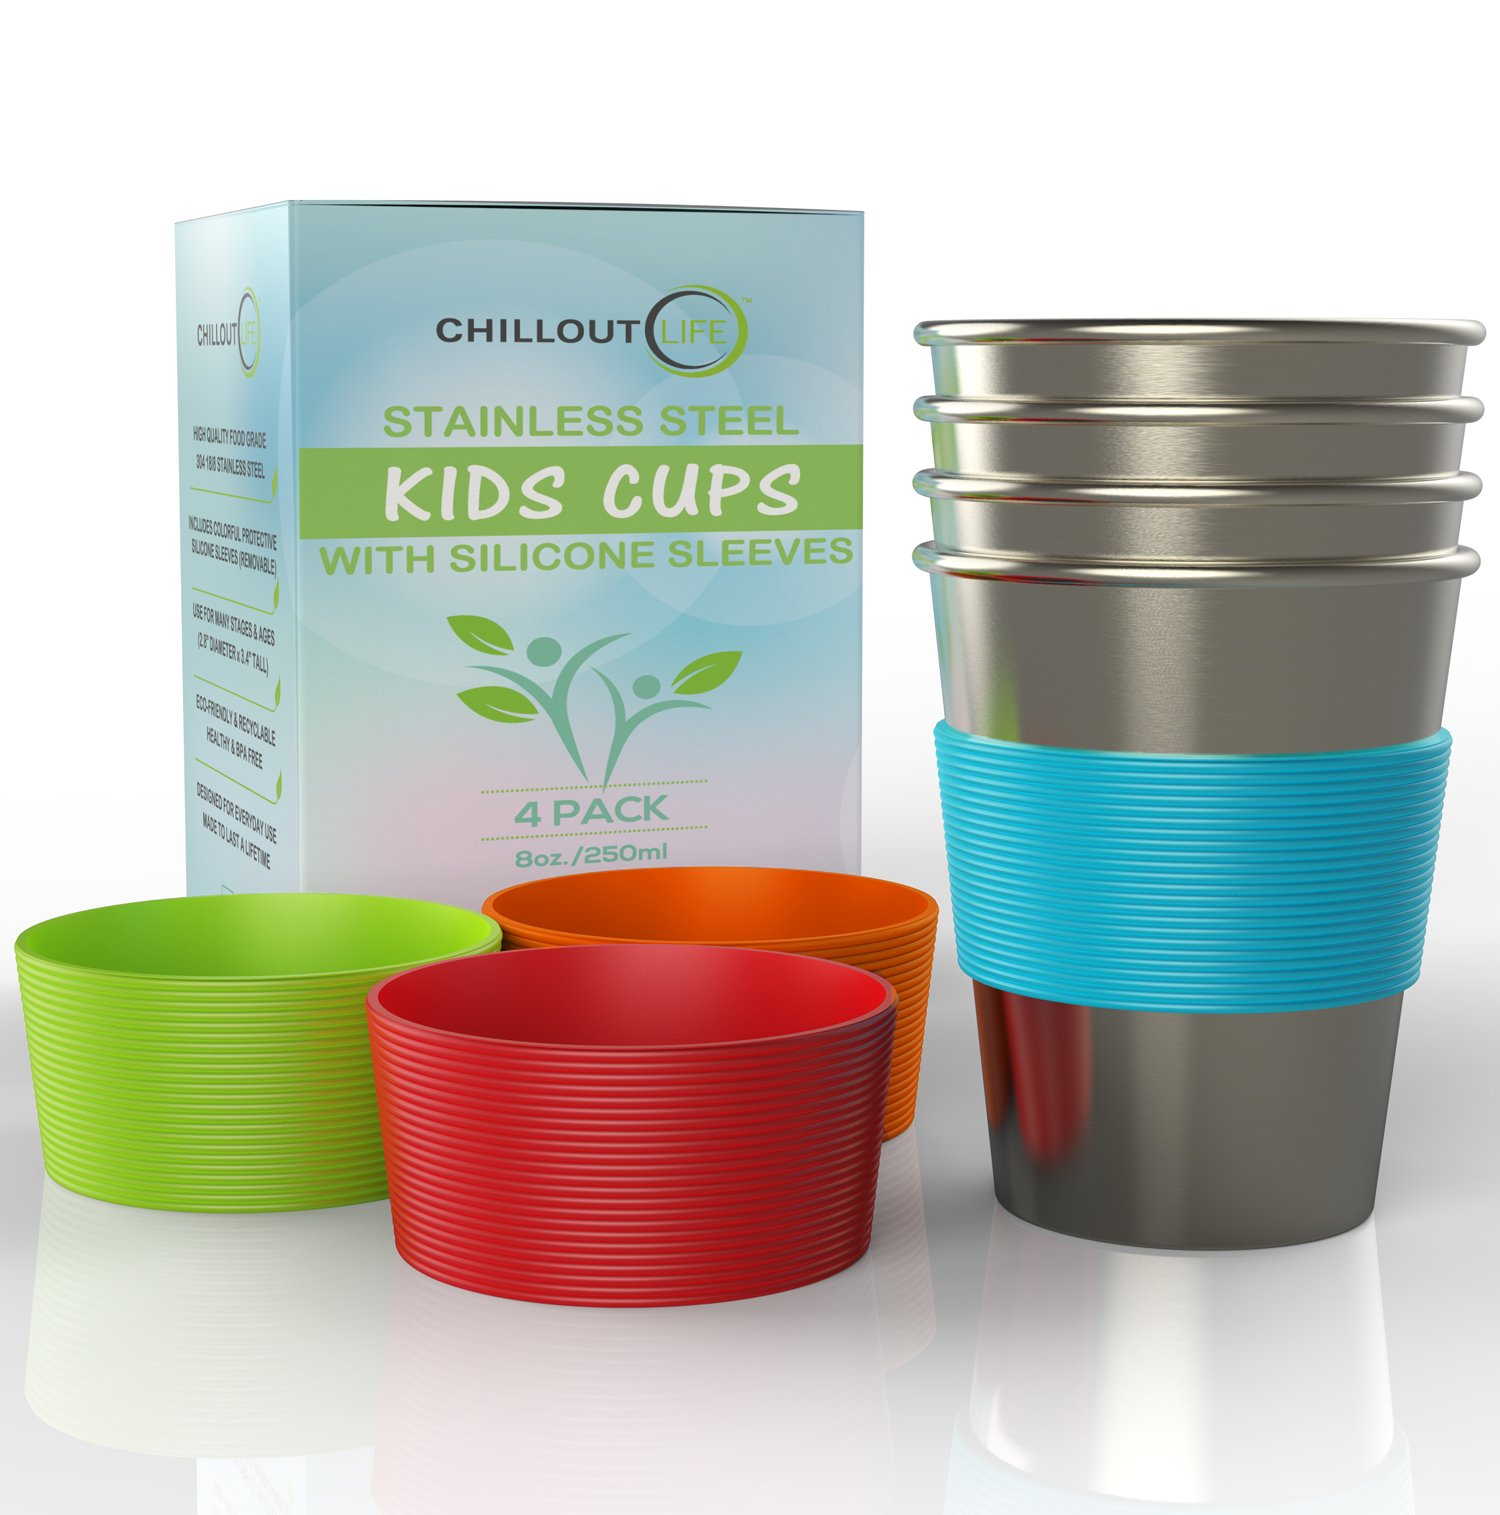 Stainless Steel Cups for Kids and Toddlers 8 oz. with Silicone Sleeves - Stainless Steel Sippy Cups for Home & Outdoor Activities, BPA Free Healthy Unbreakable Premium Metal Drinking Glasses (4-Pack) by CHILLOUT LIFE